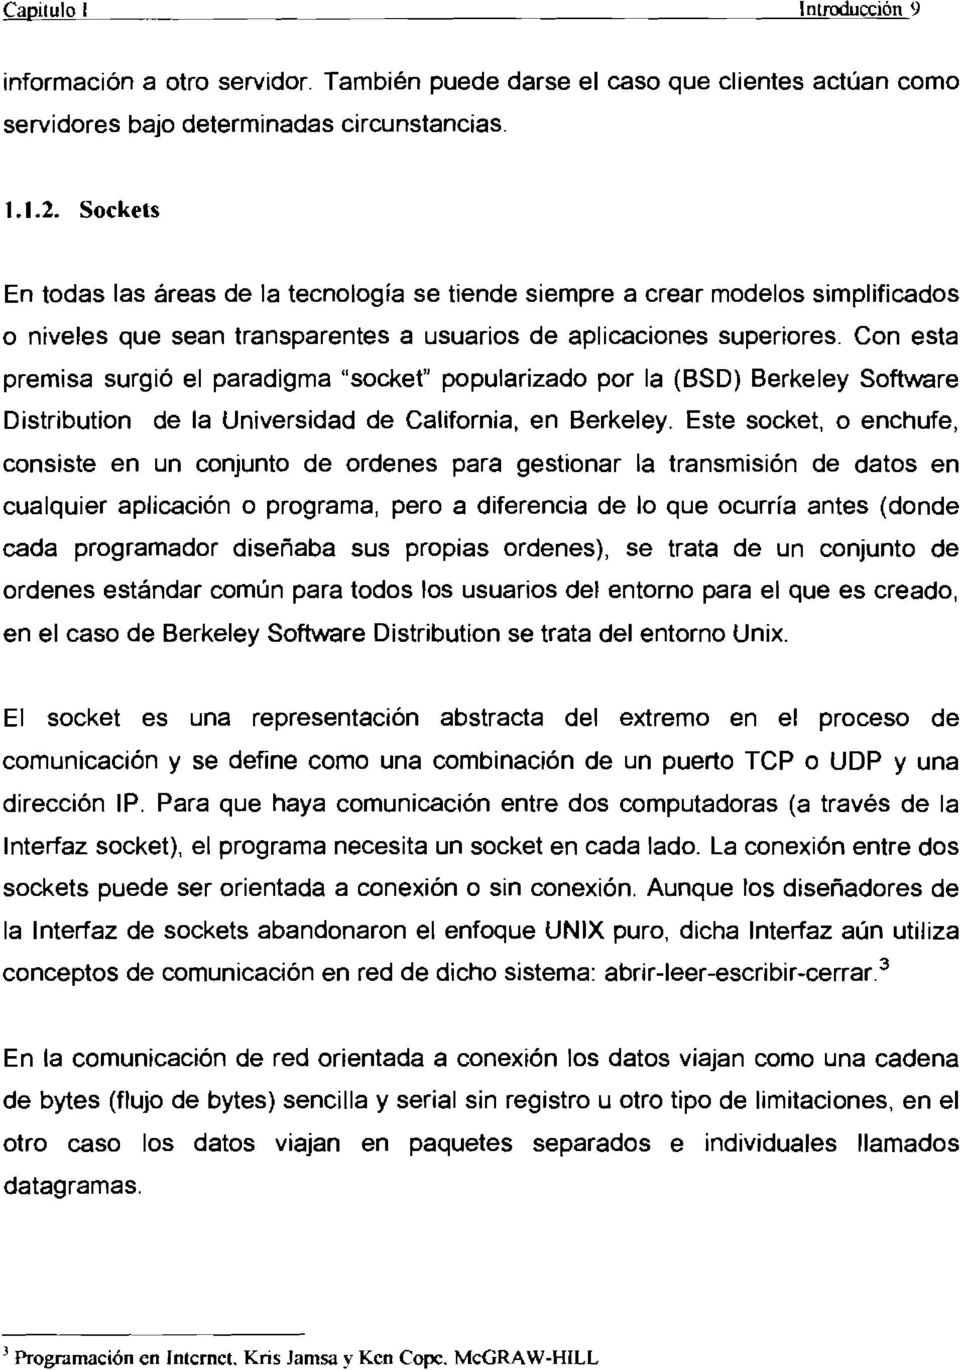 "Con esta premisa surgió el paradigma ""socket"" popularizado por la (BSD) Berkeley Software Distribution de la Universidad de California, en Berkeley."